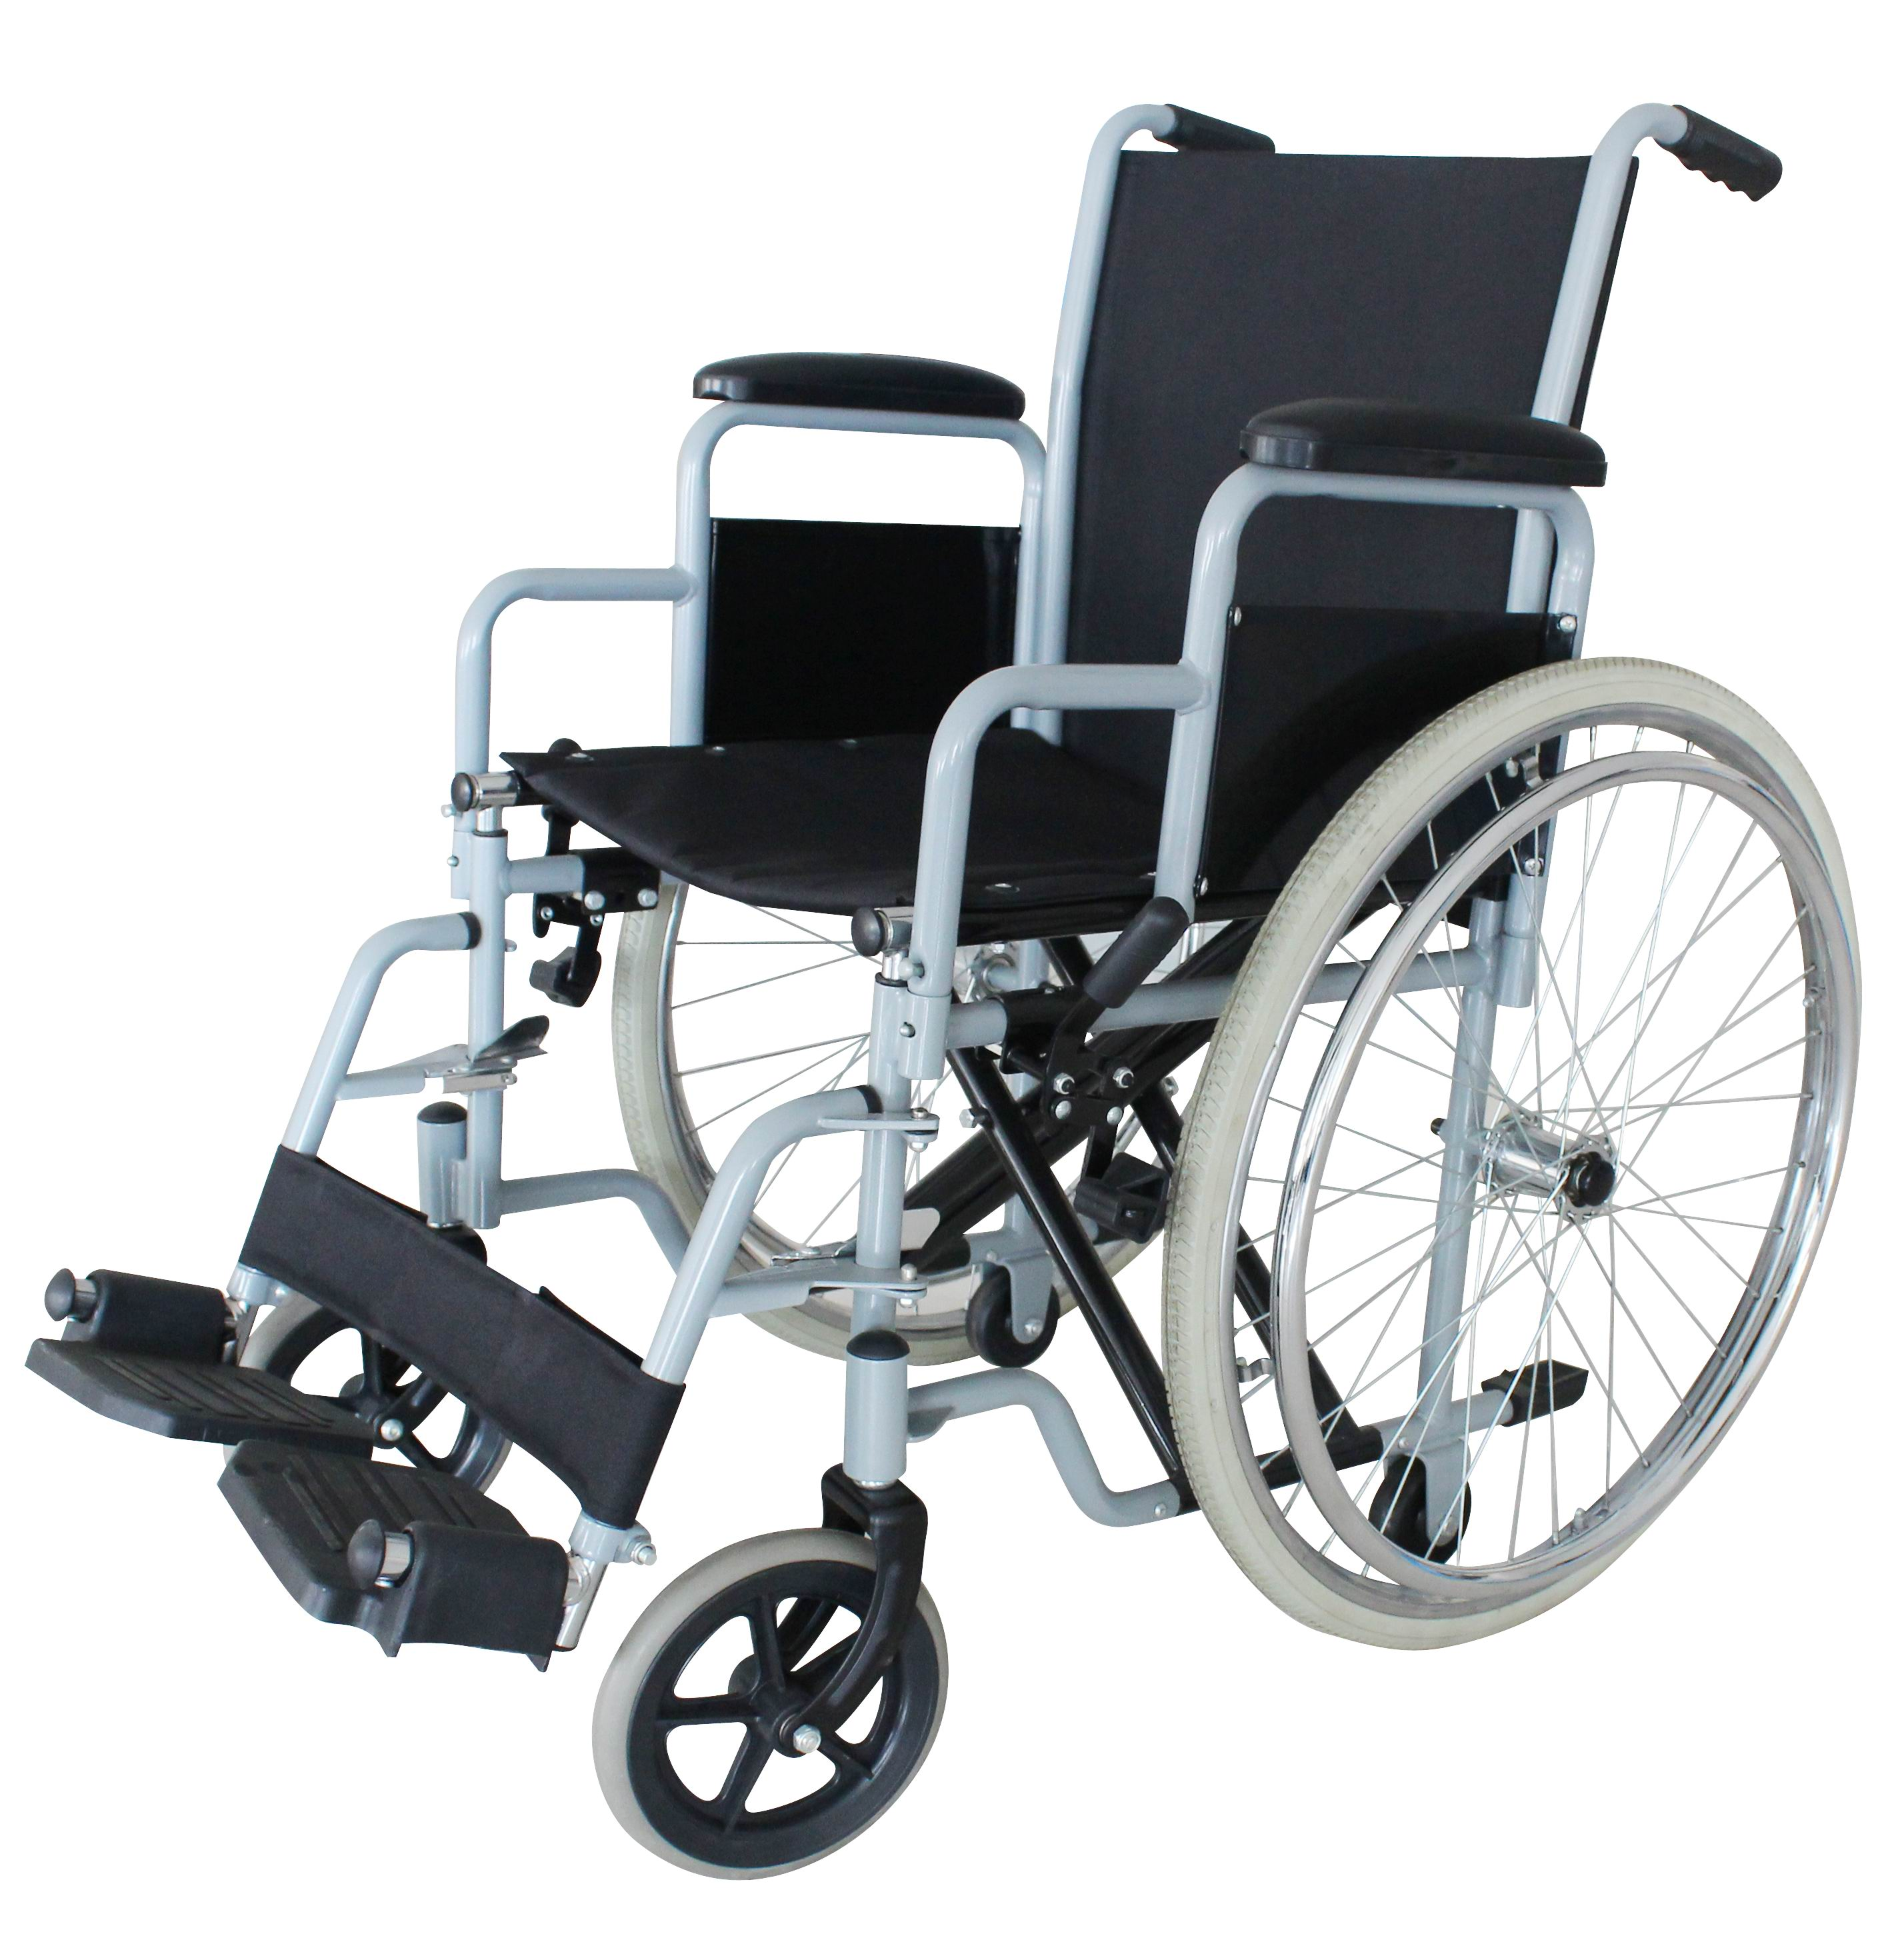 Steel Self-Propelling Wheelchair